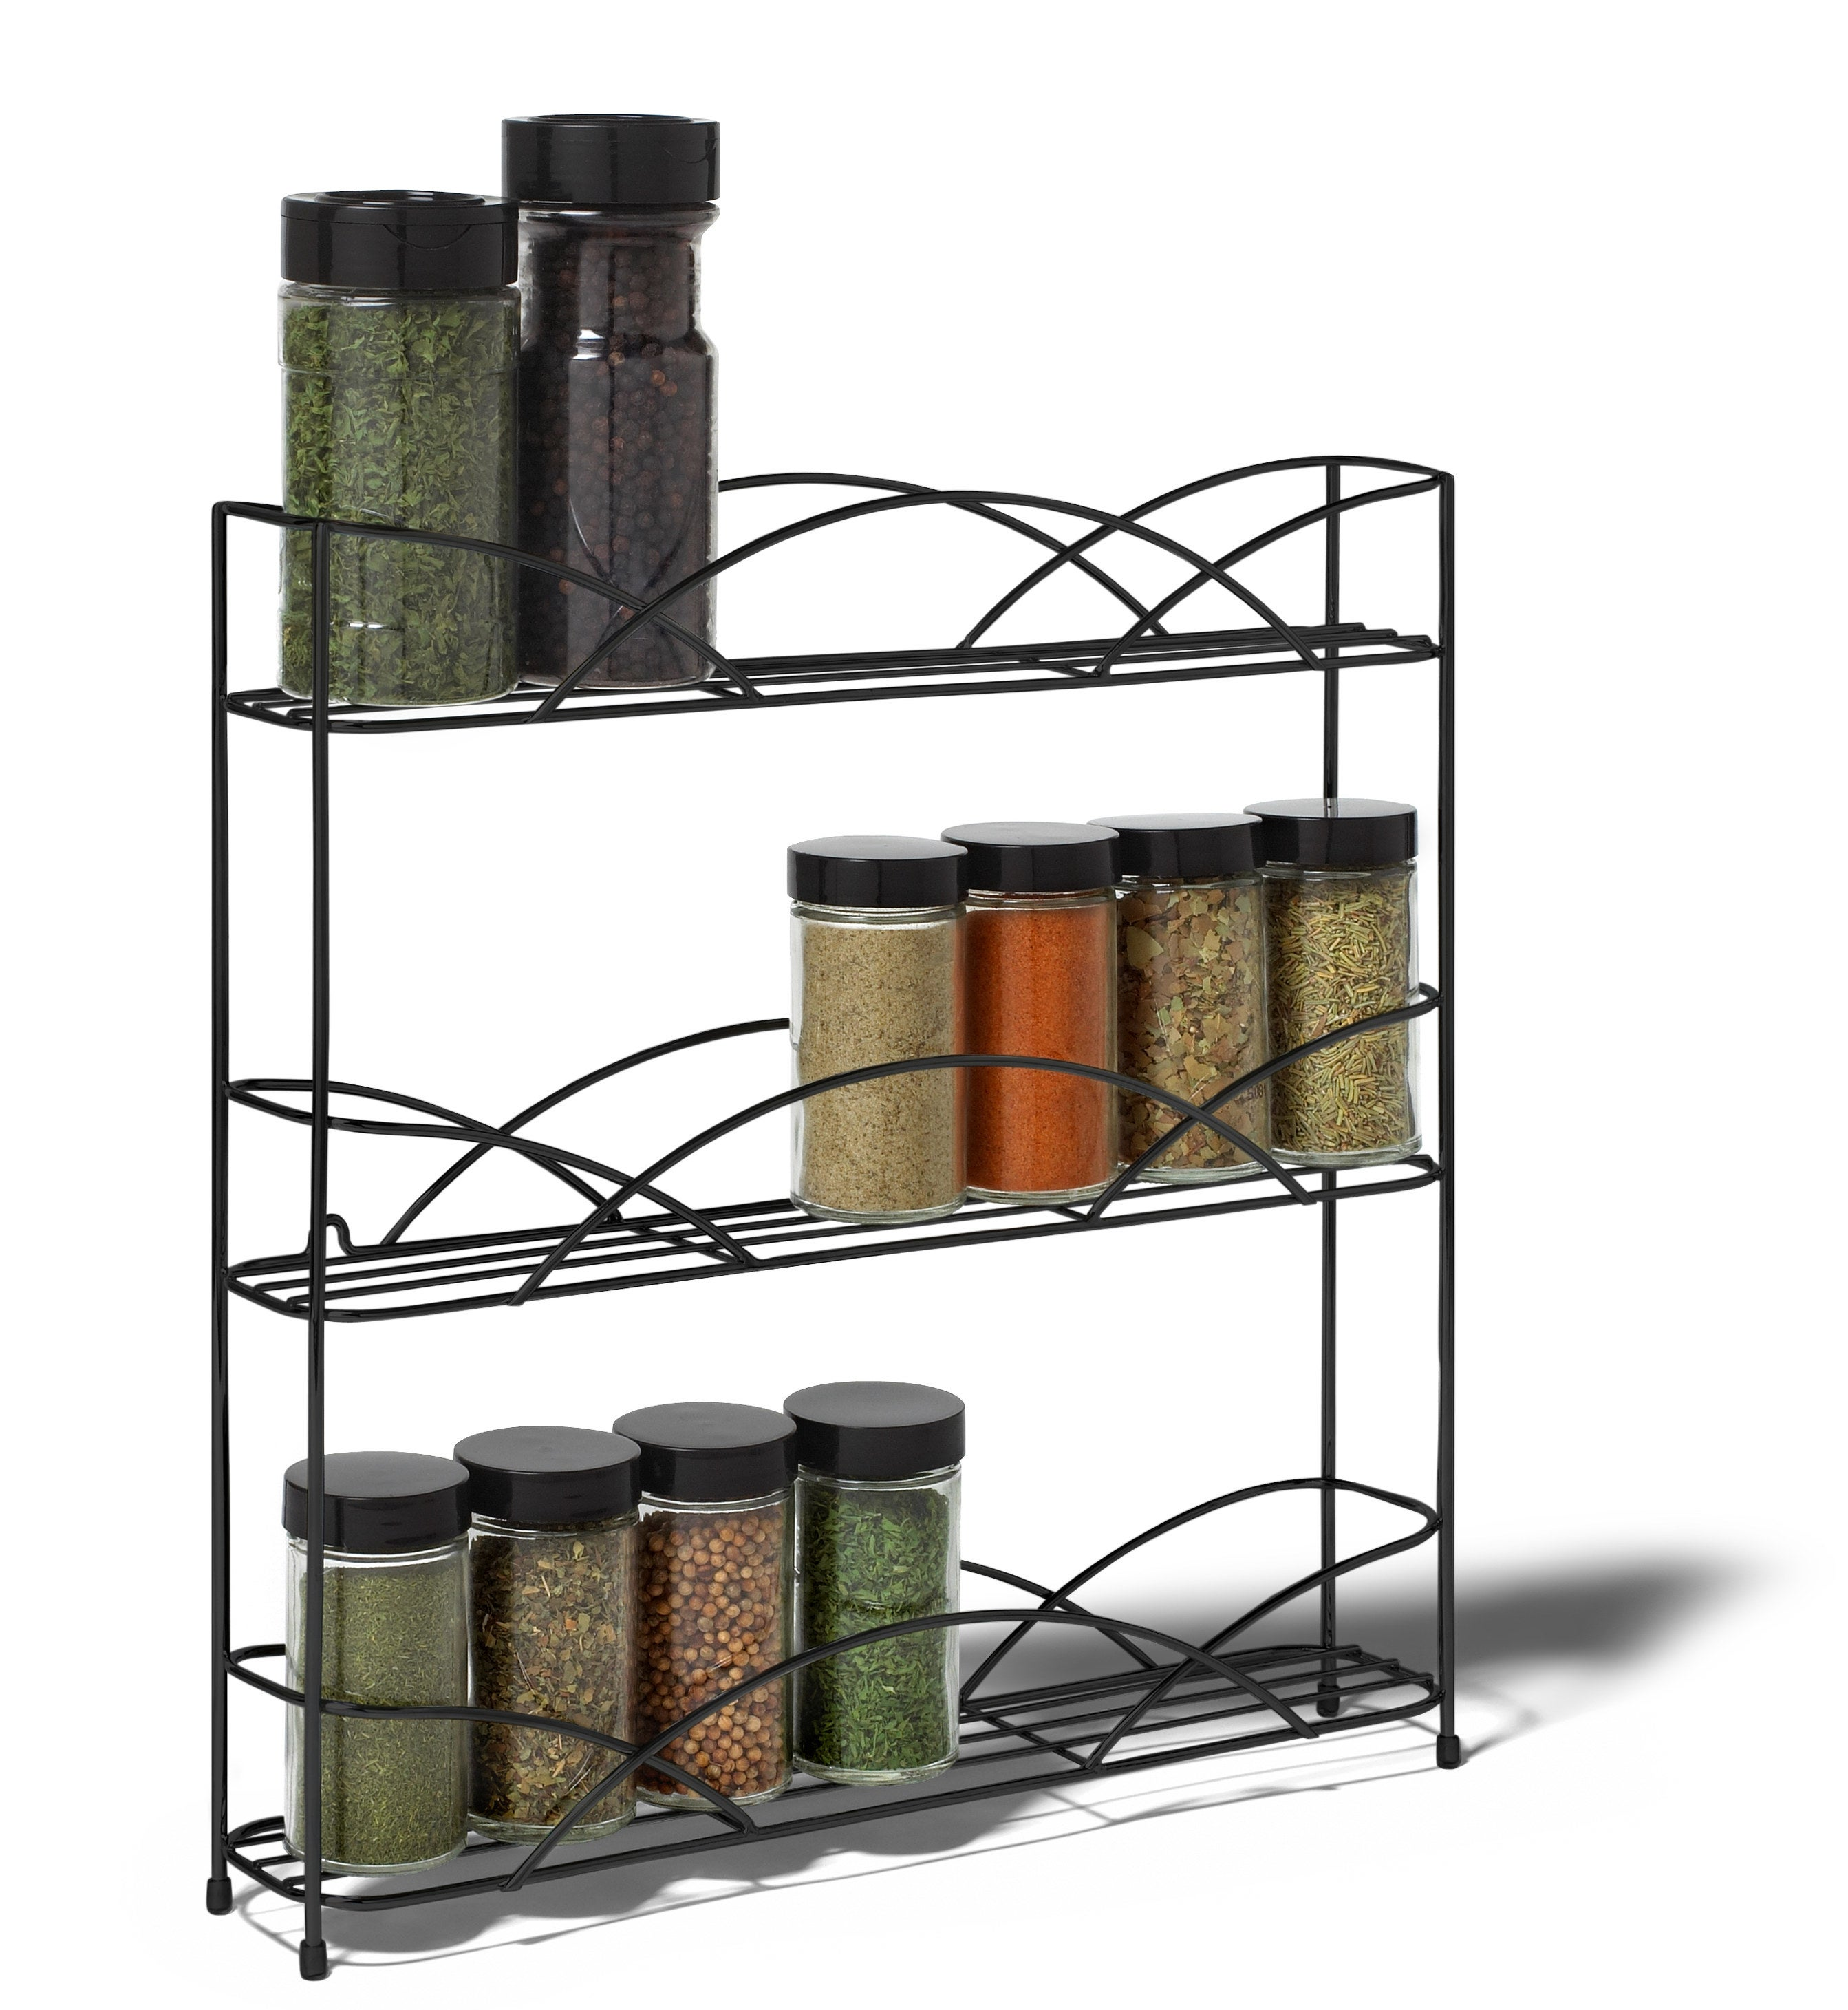 The black wire spice rack